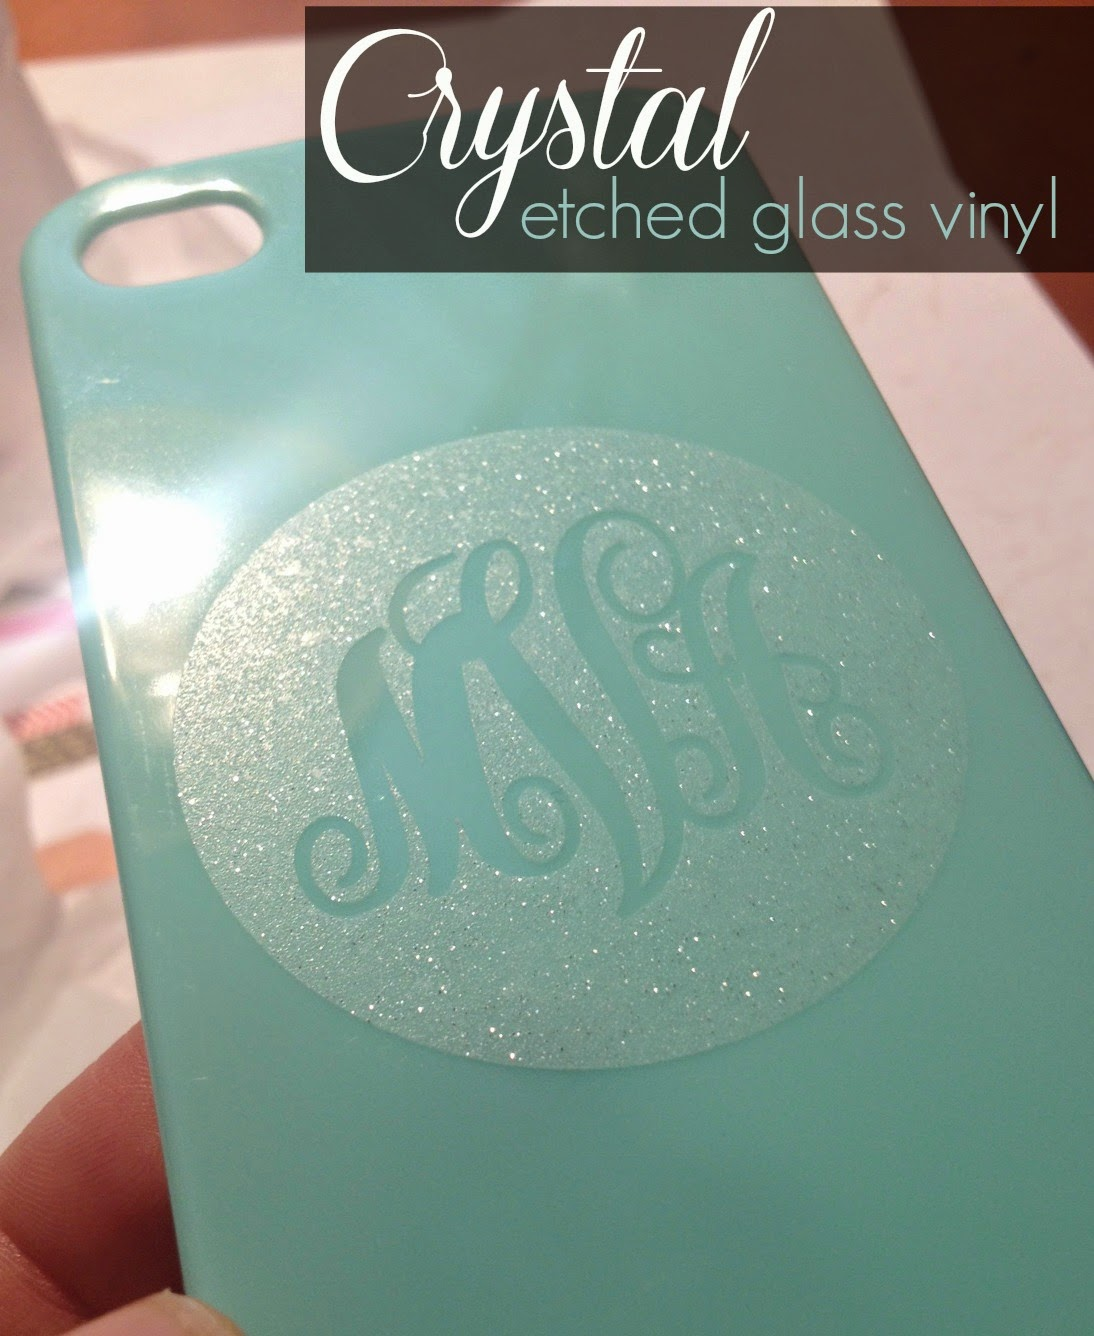 Faux etch glass, mirrors, vinyl, Silhouette tutorial, phone case